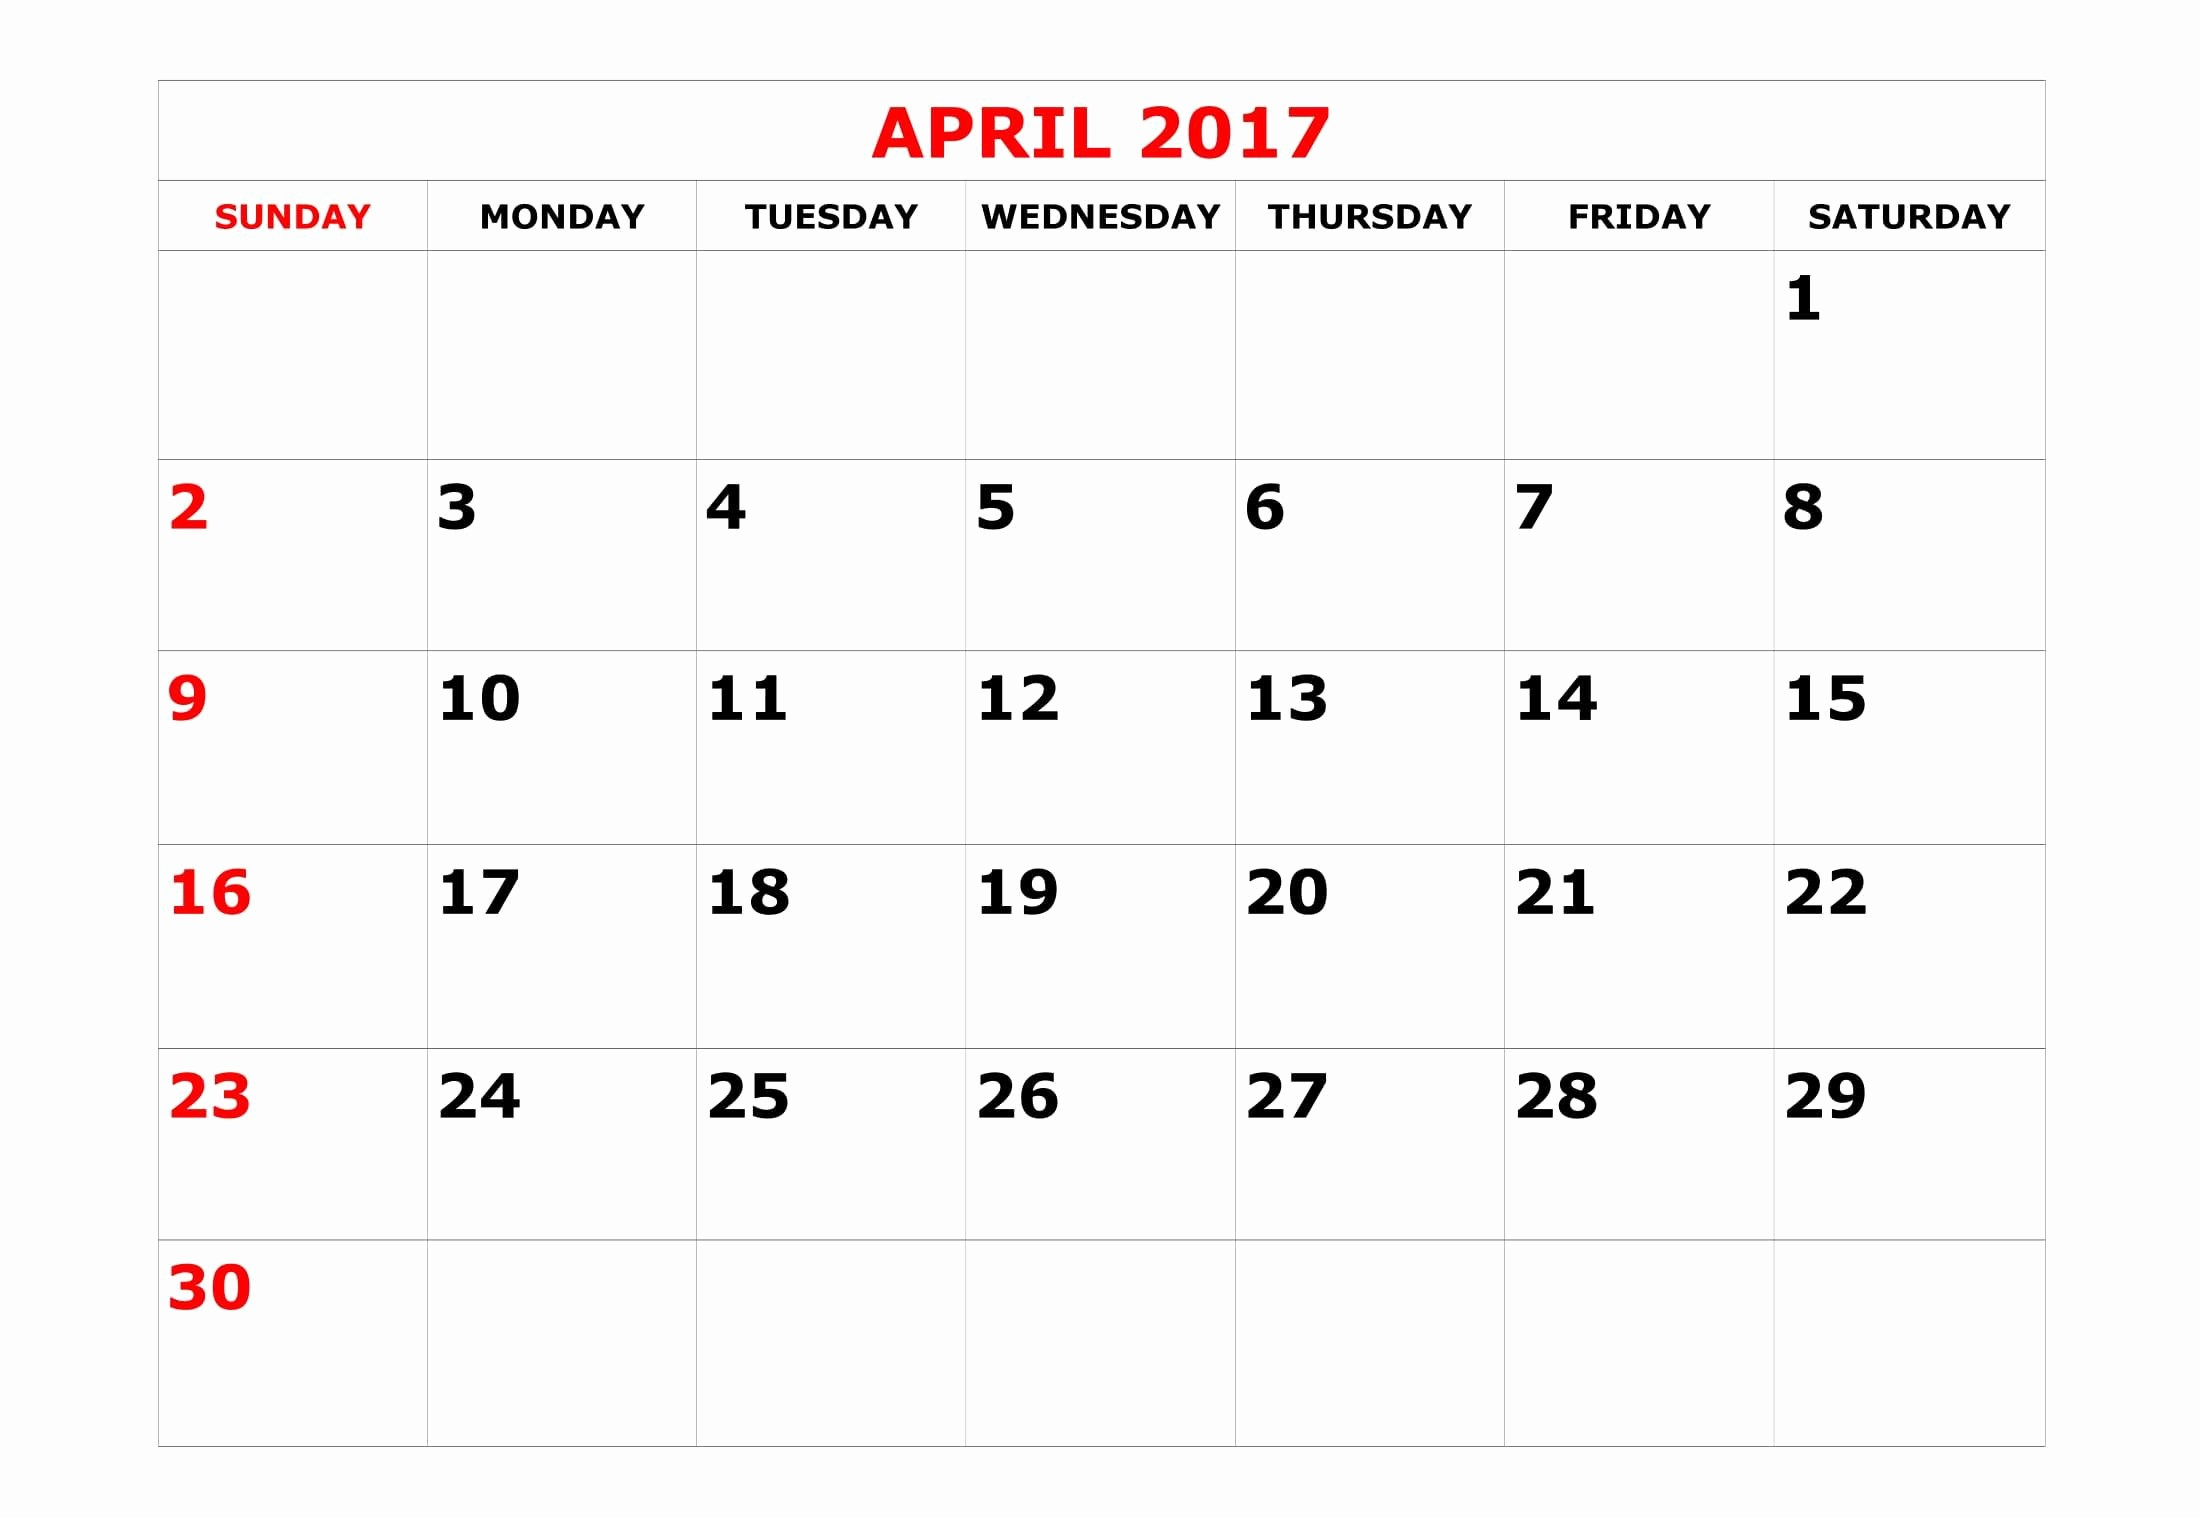 april 2017 calendar monday sunday